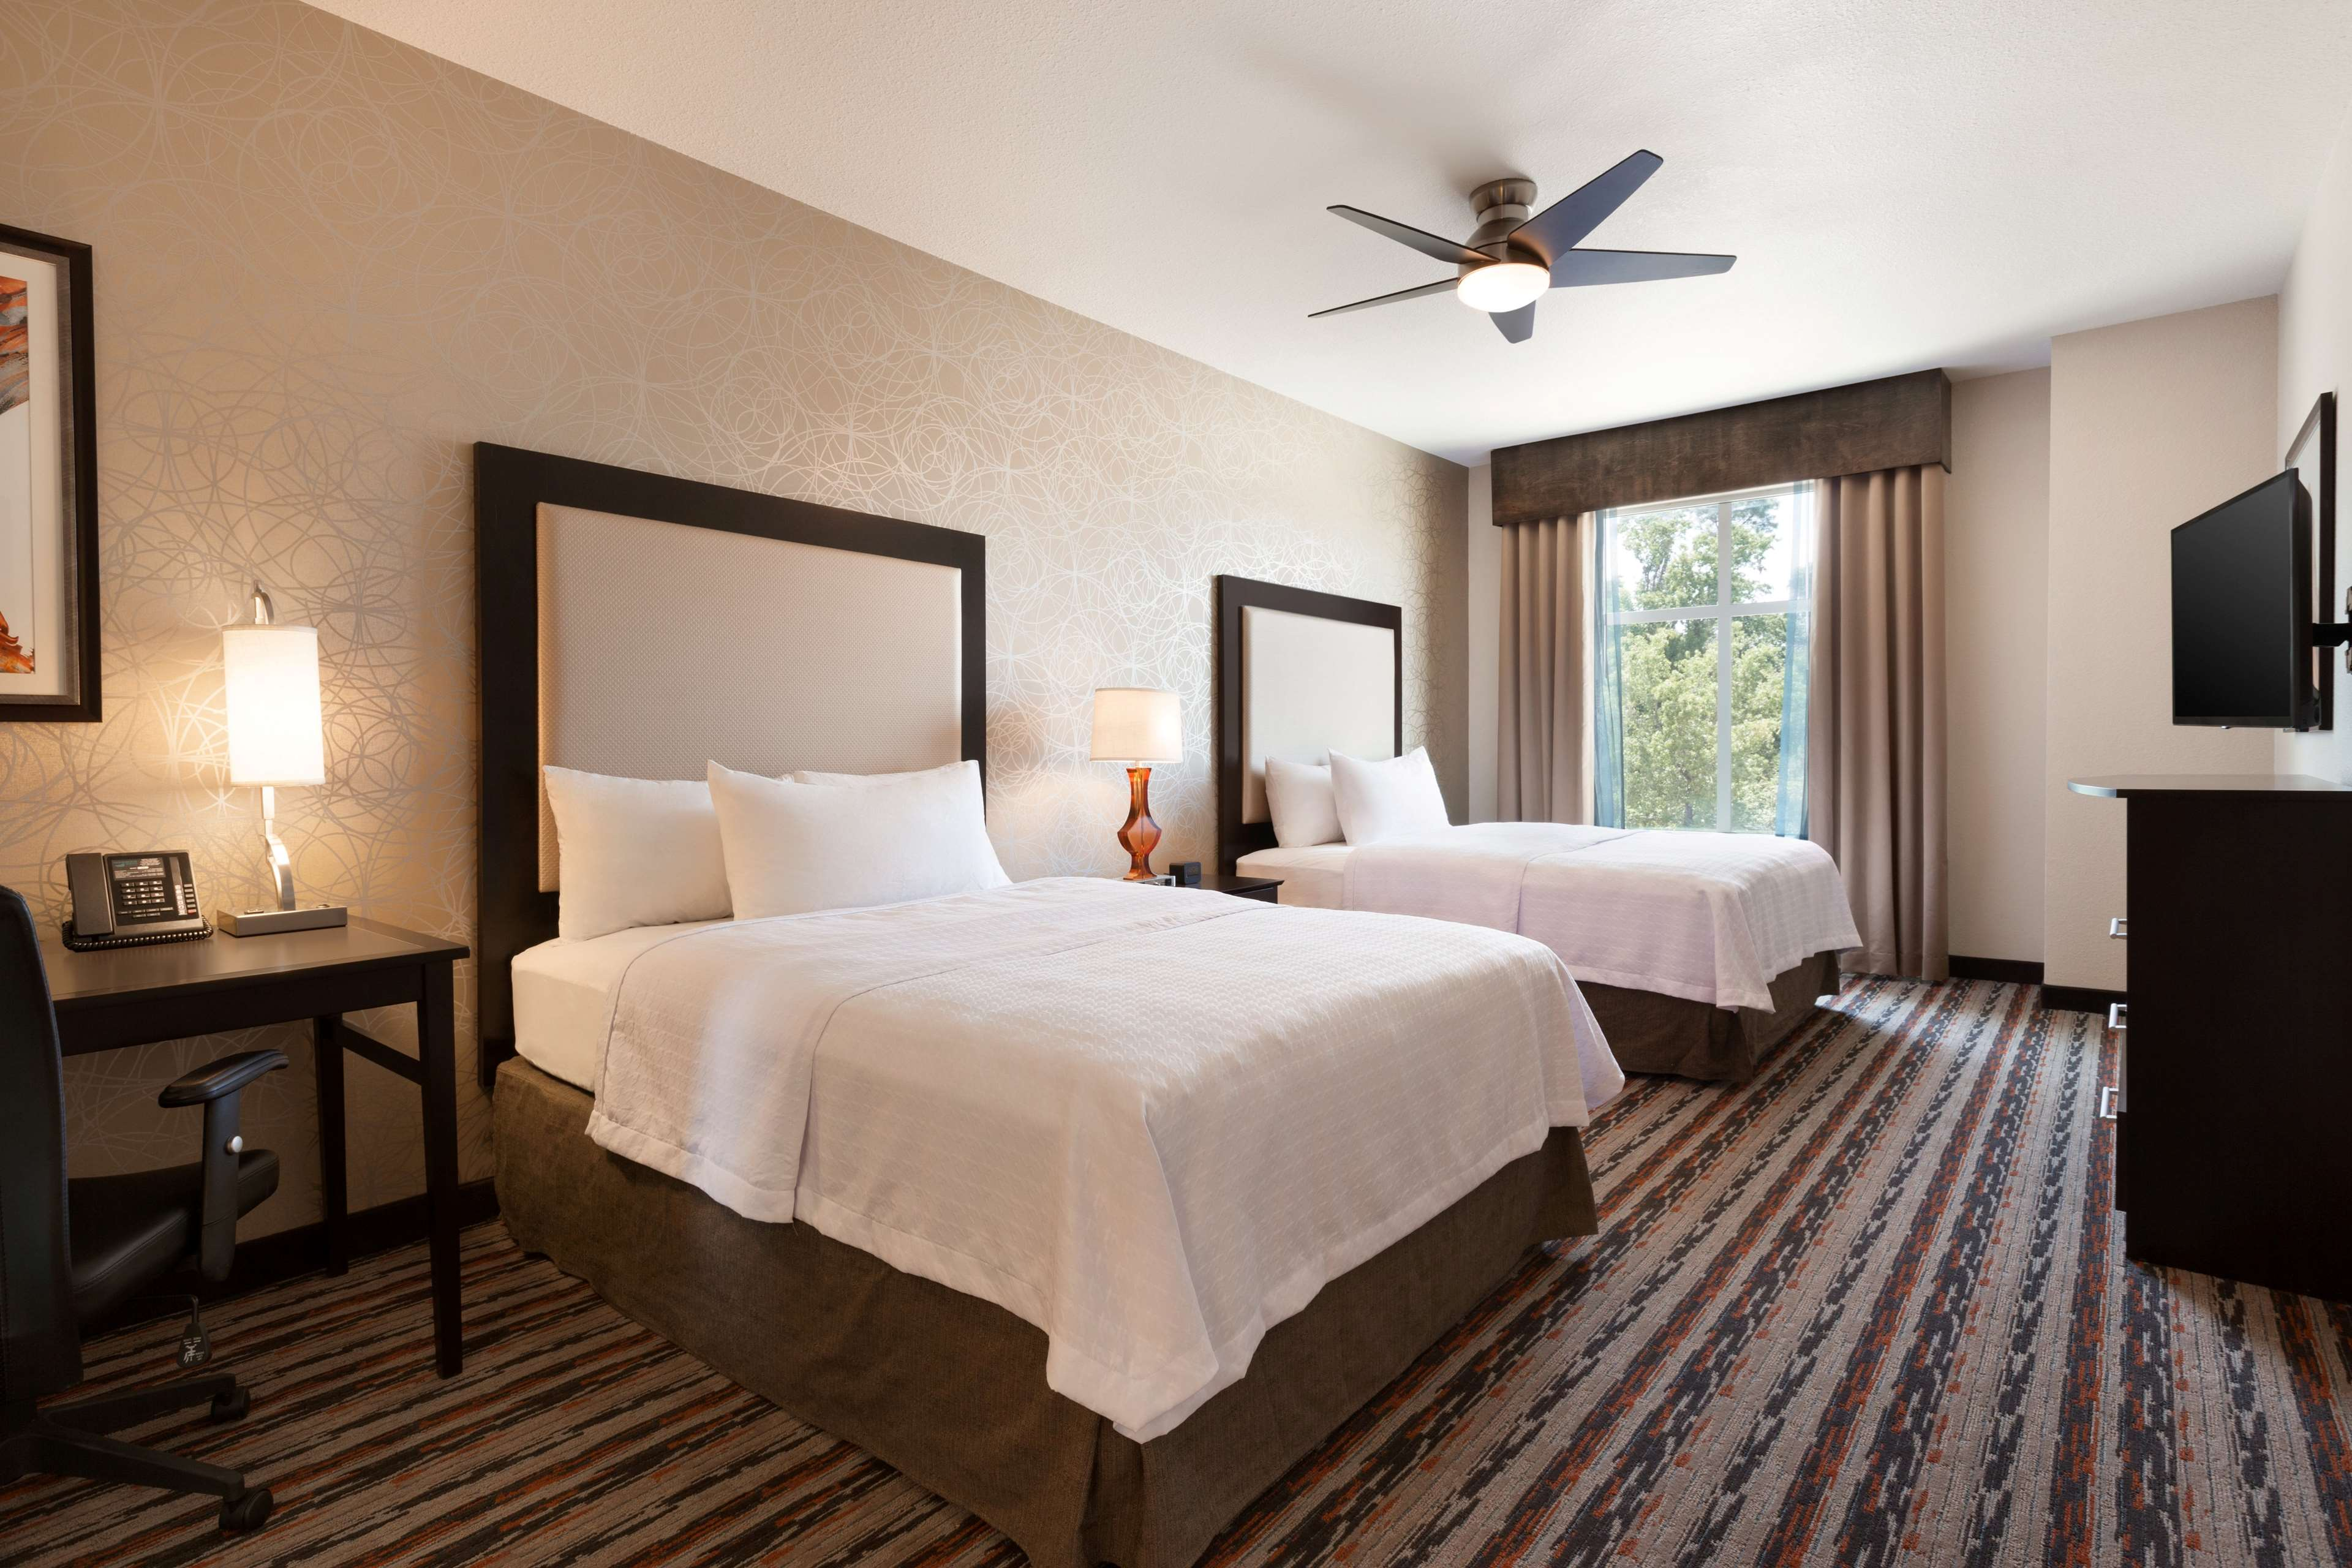 Homewood Suites by Hilton North Houston/Spring image 18